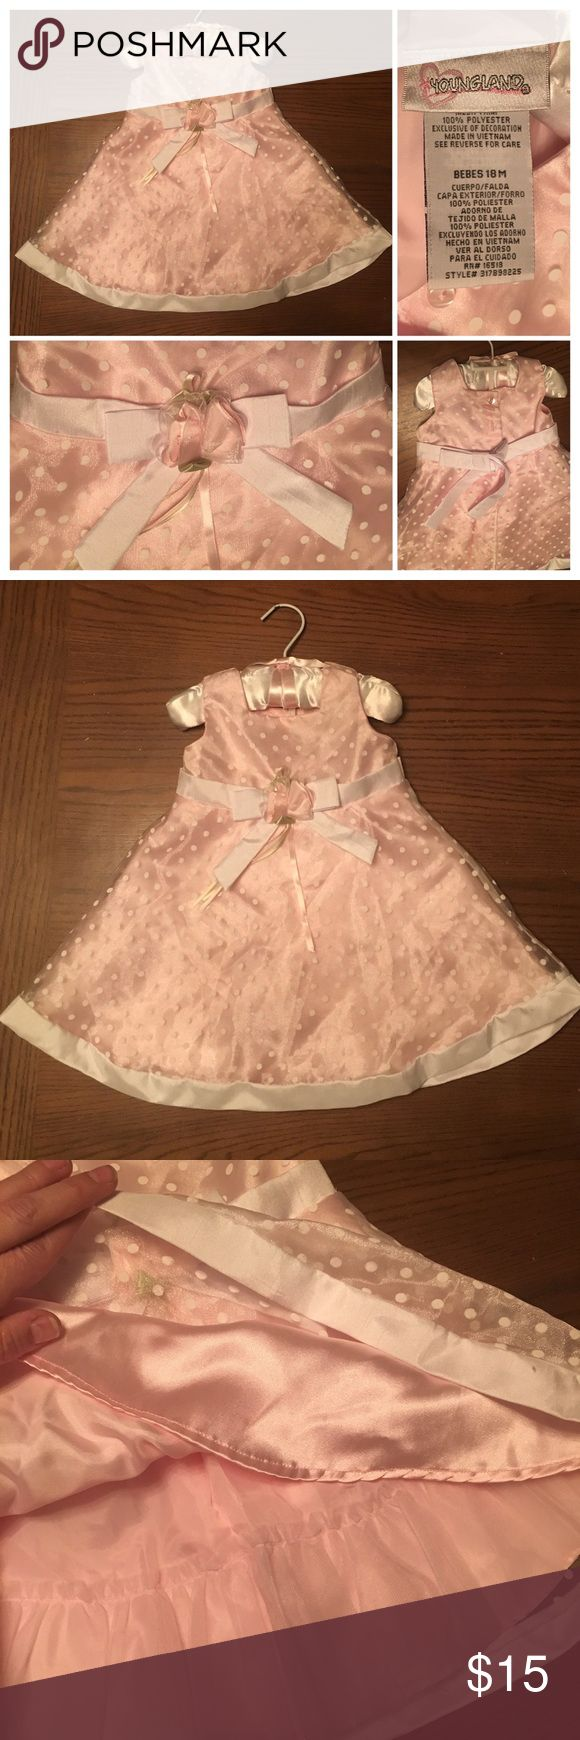 NWOT Size 18M Toddler Girl Party Dress Set! NWOT, this size 18month toddler girl's dress is in unused condition- comes complete with padded, matching hanger and satin diaper cover! Pastel pink as its base color, the dress has a sheer shimmery top layer with white polka dots, over two additional layers of lining and attached petticoat! Beautiful details at the waist, and a tie in back in addition to the buttons! Please see pictures for labels and materials, thank you! Youngland Dresses Formal